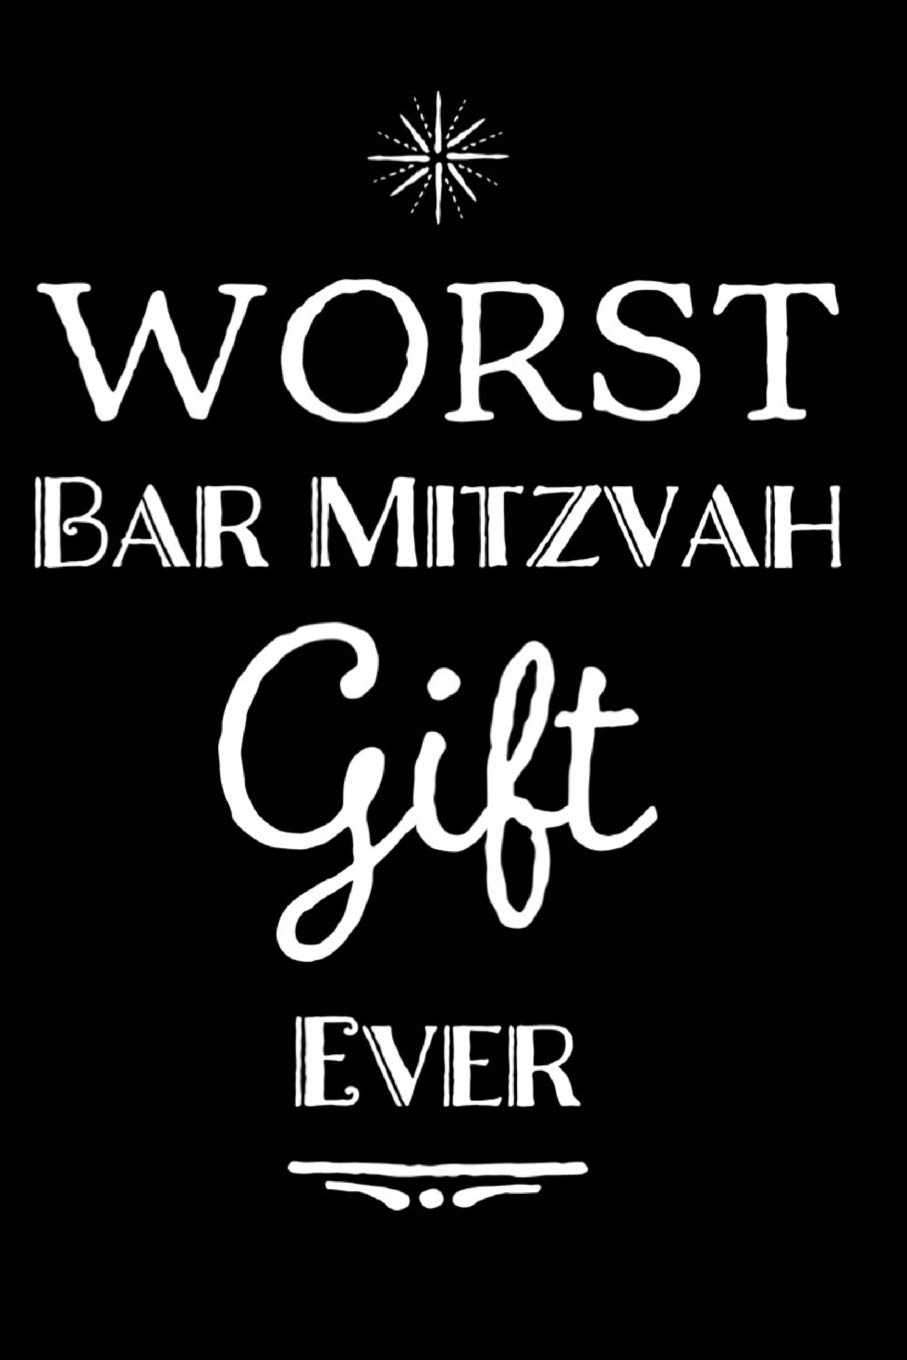 Worst Bar Mitzvah Gift Ever: 110-Page Blank Lined Journal Bar Mitzvah Gag Gift Idea Paperback – February 2, 2019